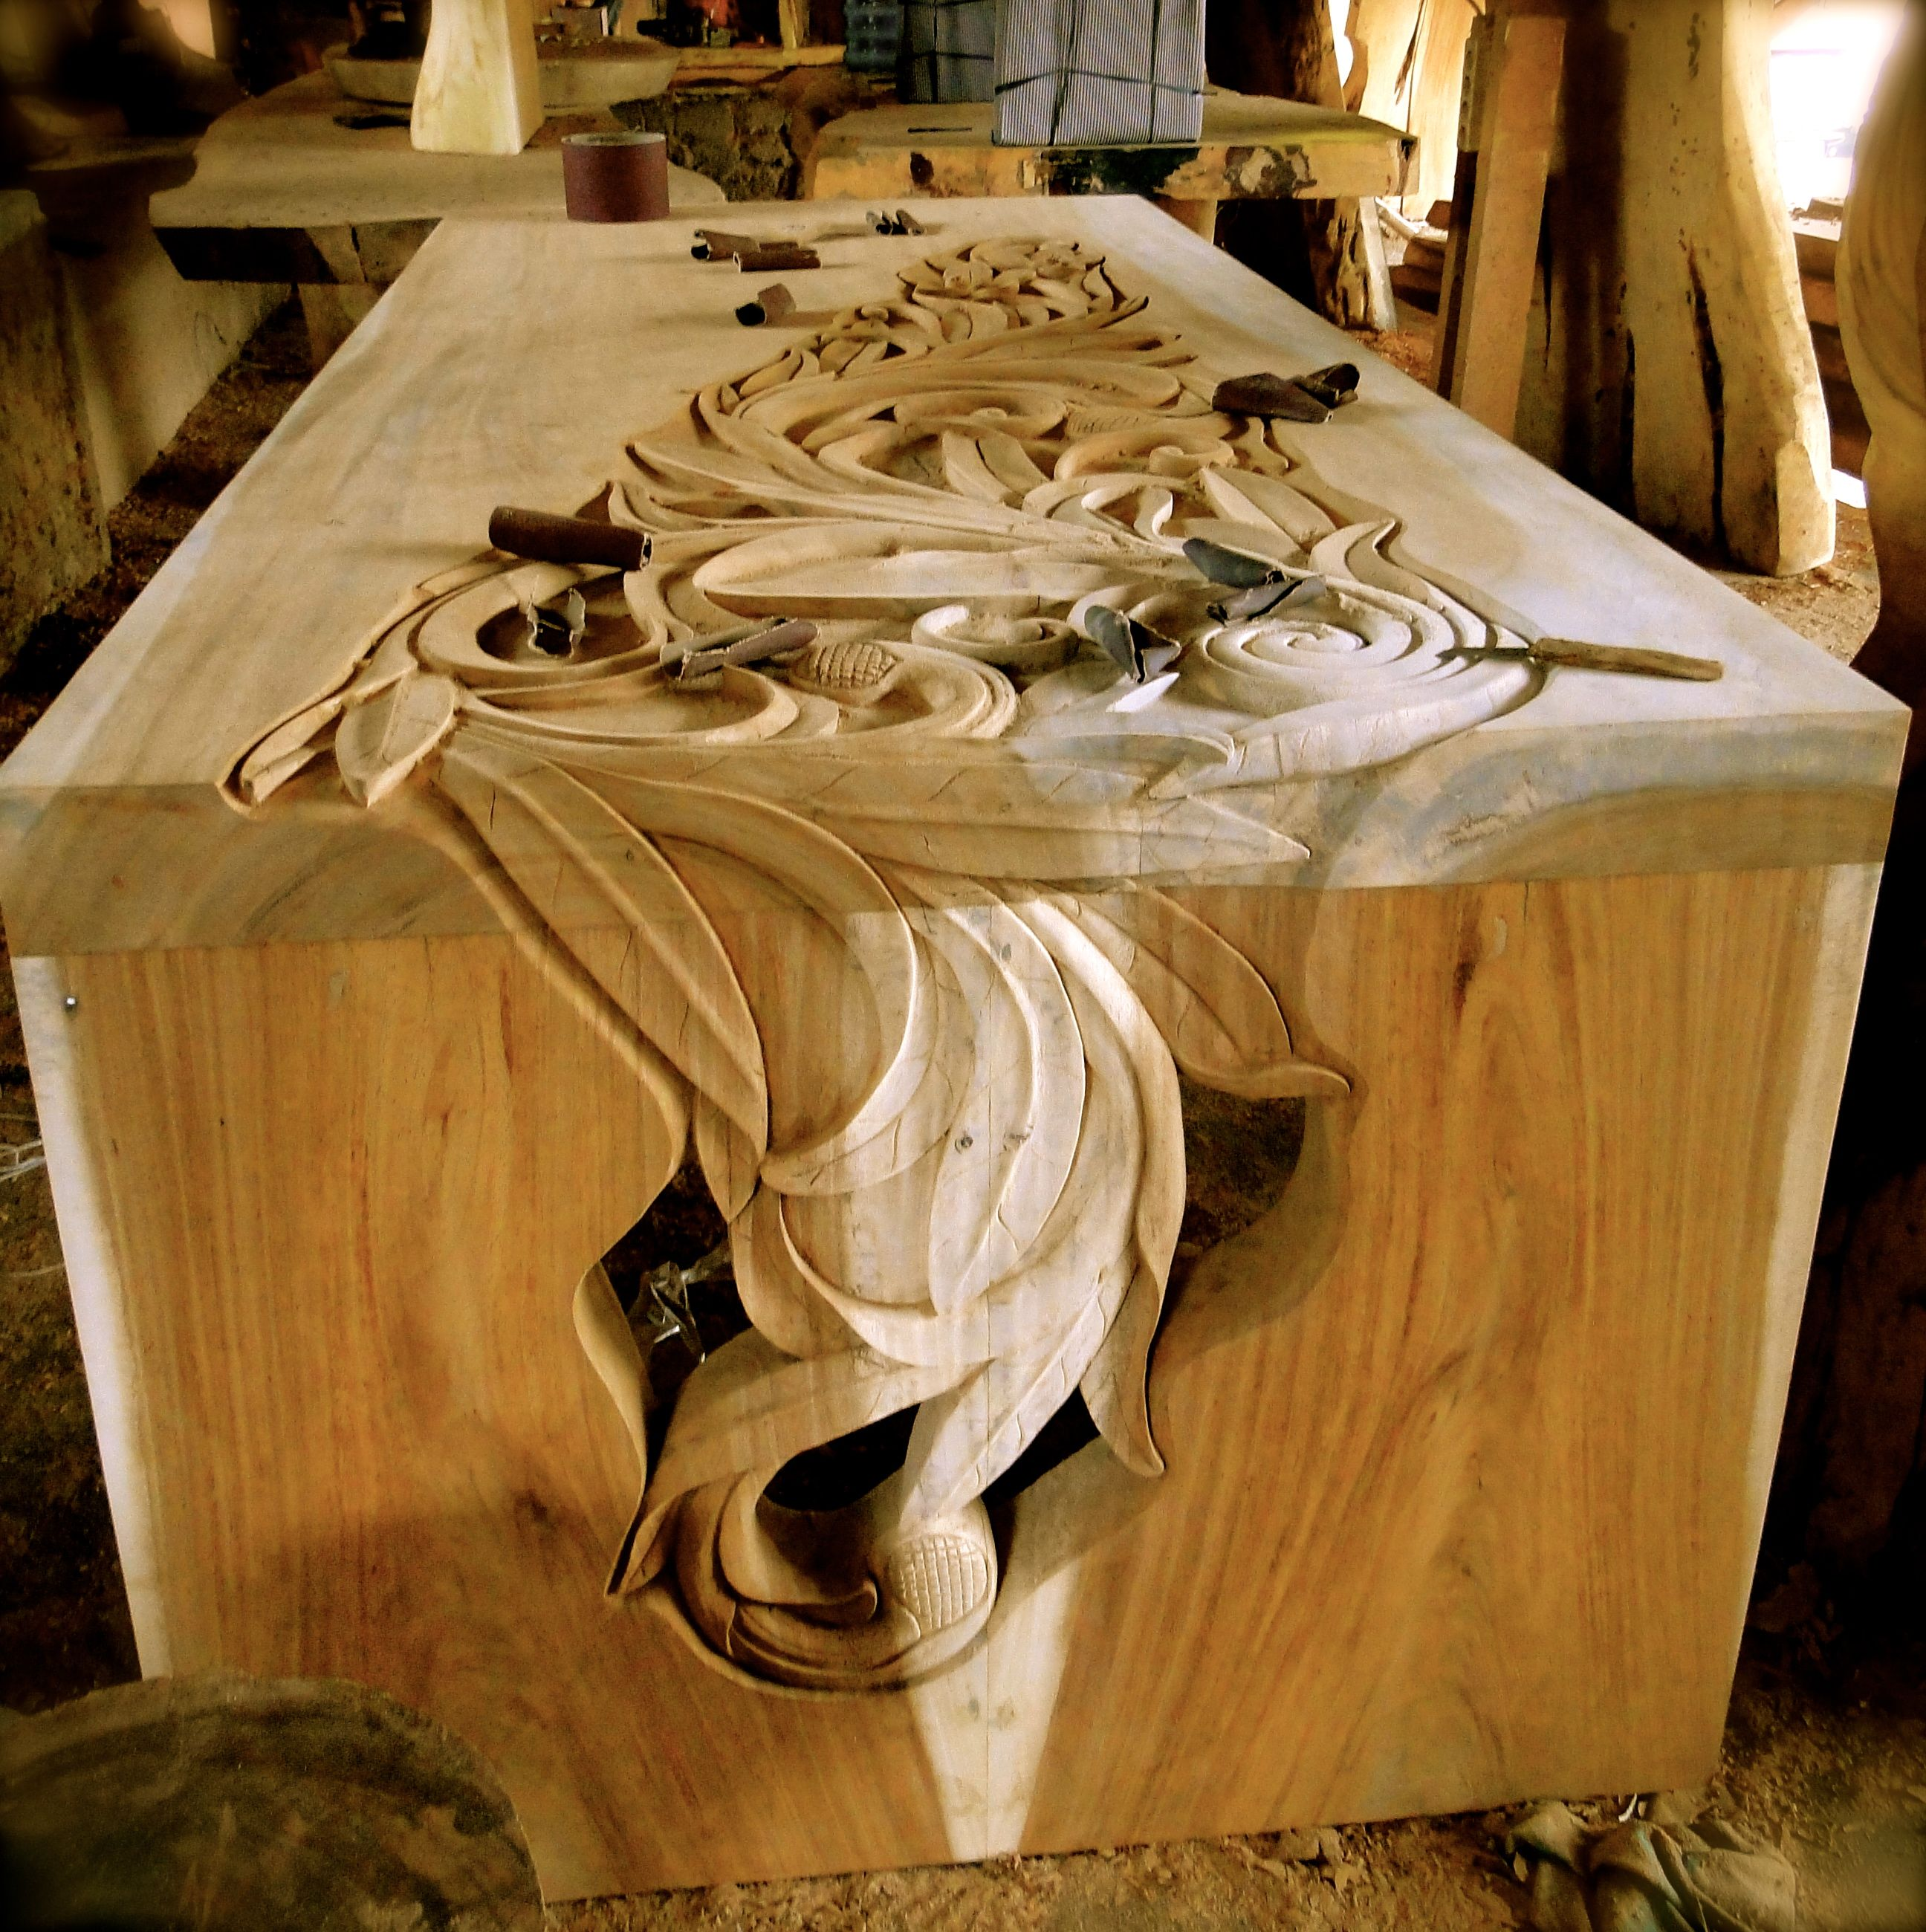 Woodworking Table Ideas Incredible Craftsmanship In Bali Hand Carved Table A